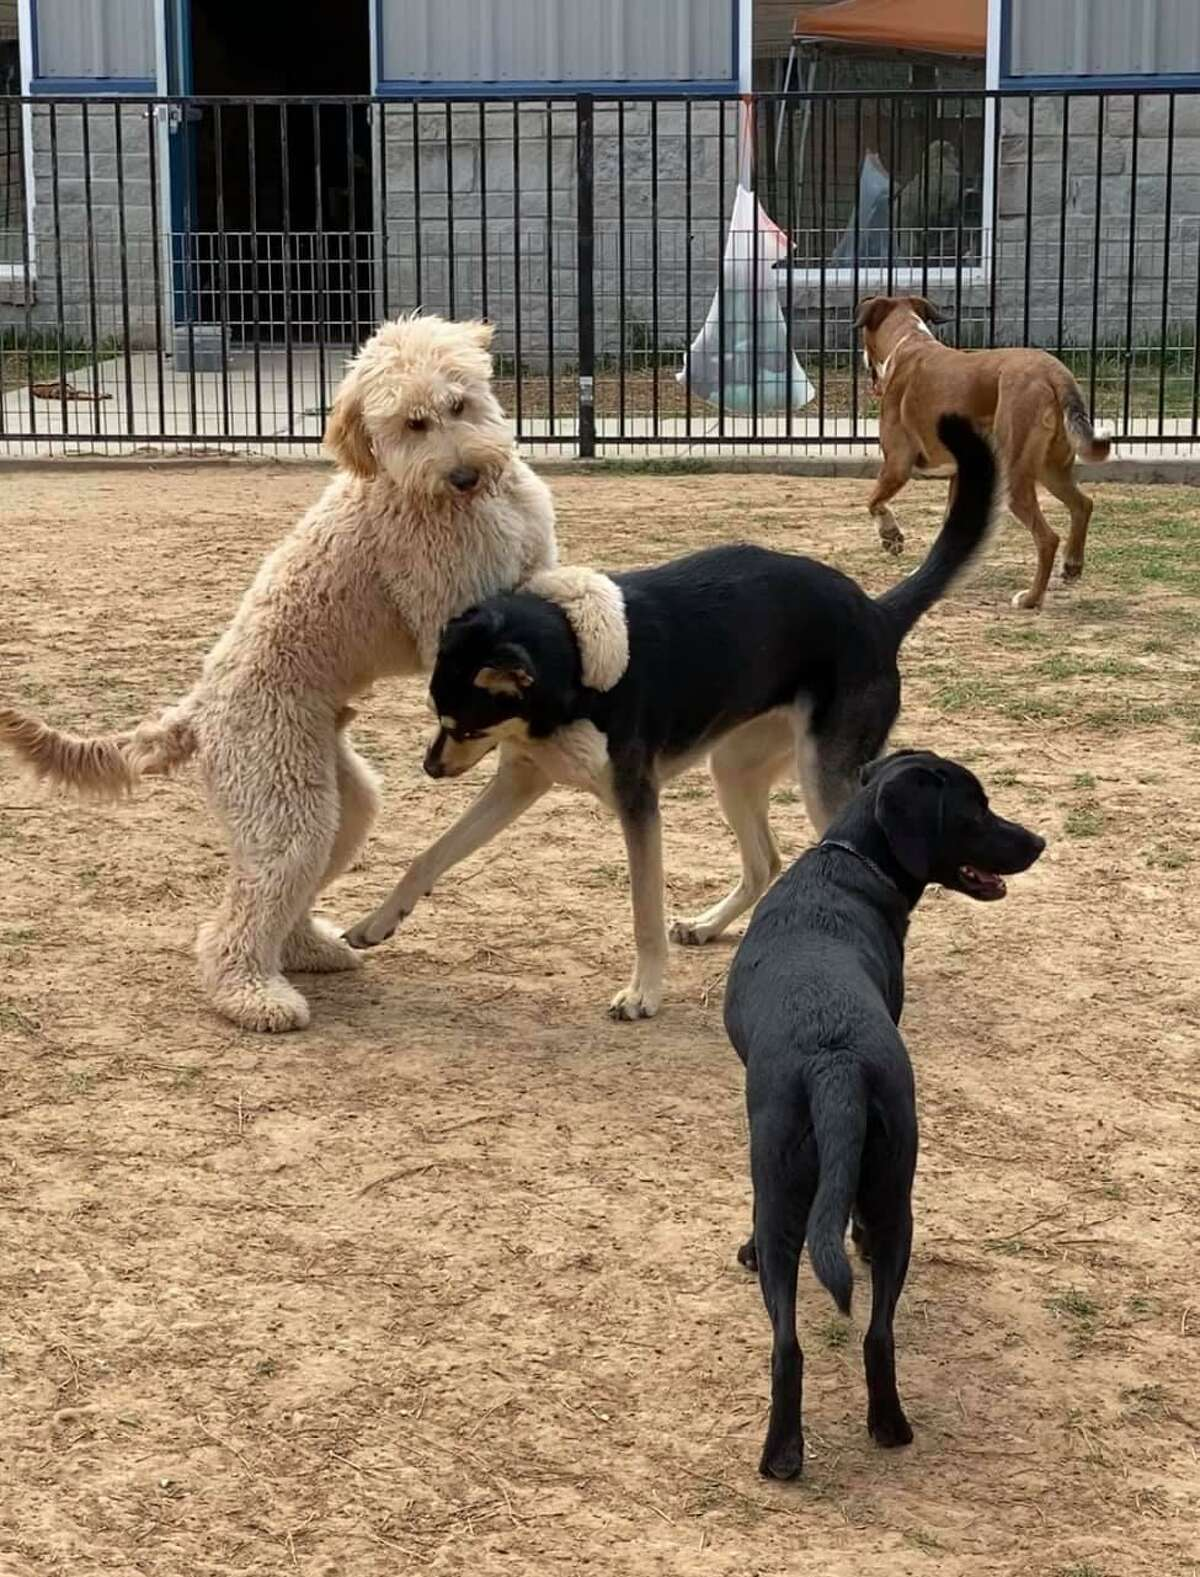 Dogs frolic in a play area at Pets Gone Wild.